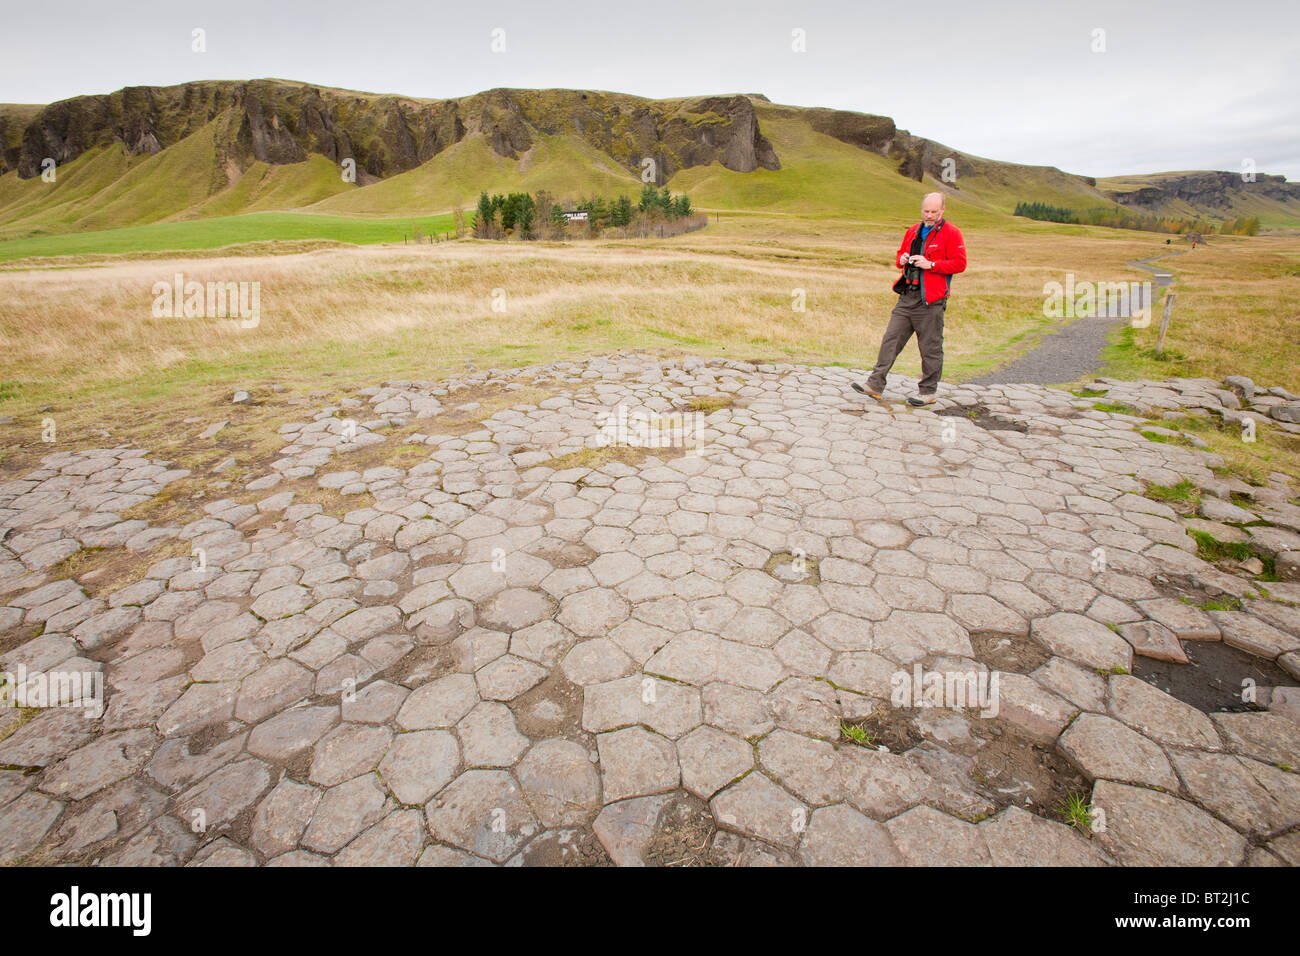 The church floor, a flat area of columnar jointing in Basalt rock at Kirkjubaejarklauster on Iceland's south - Stock Image